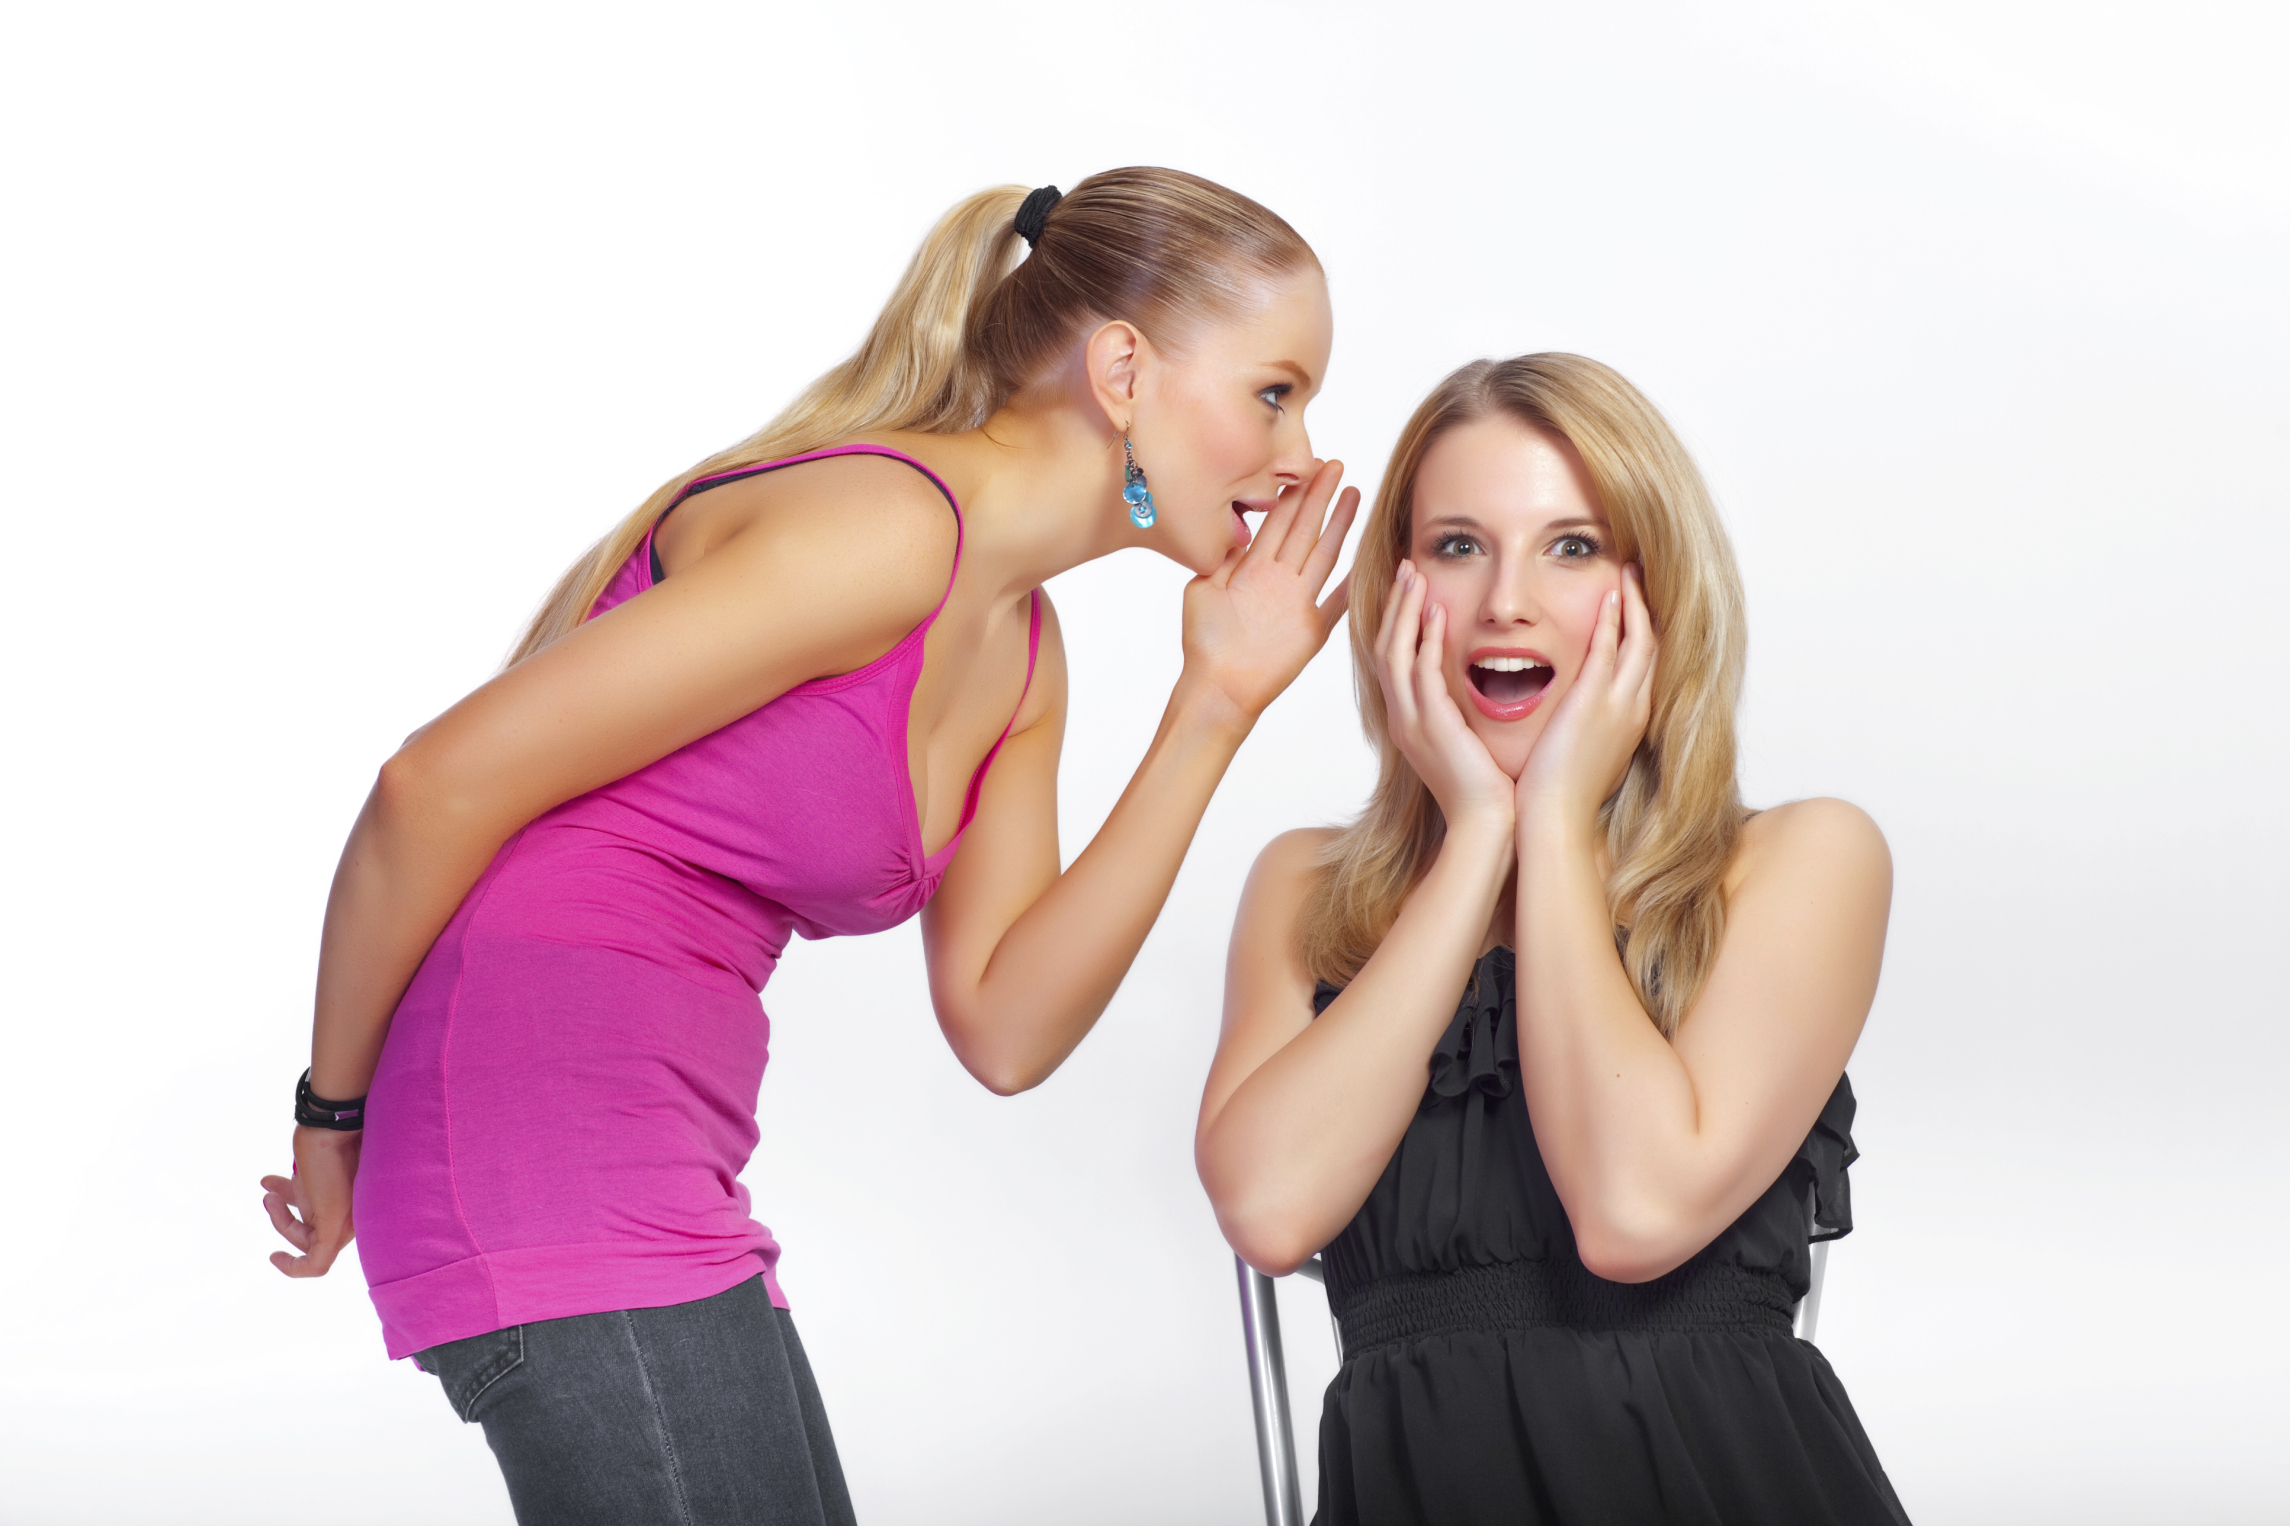 A young girl whispers a secret into her friends ear